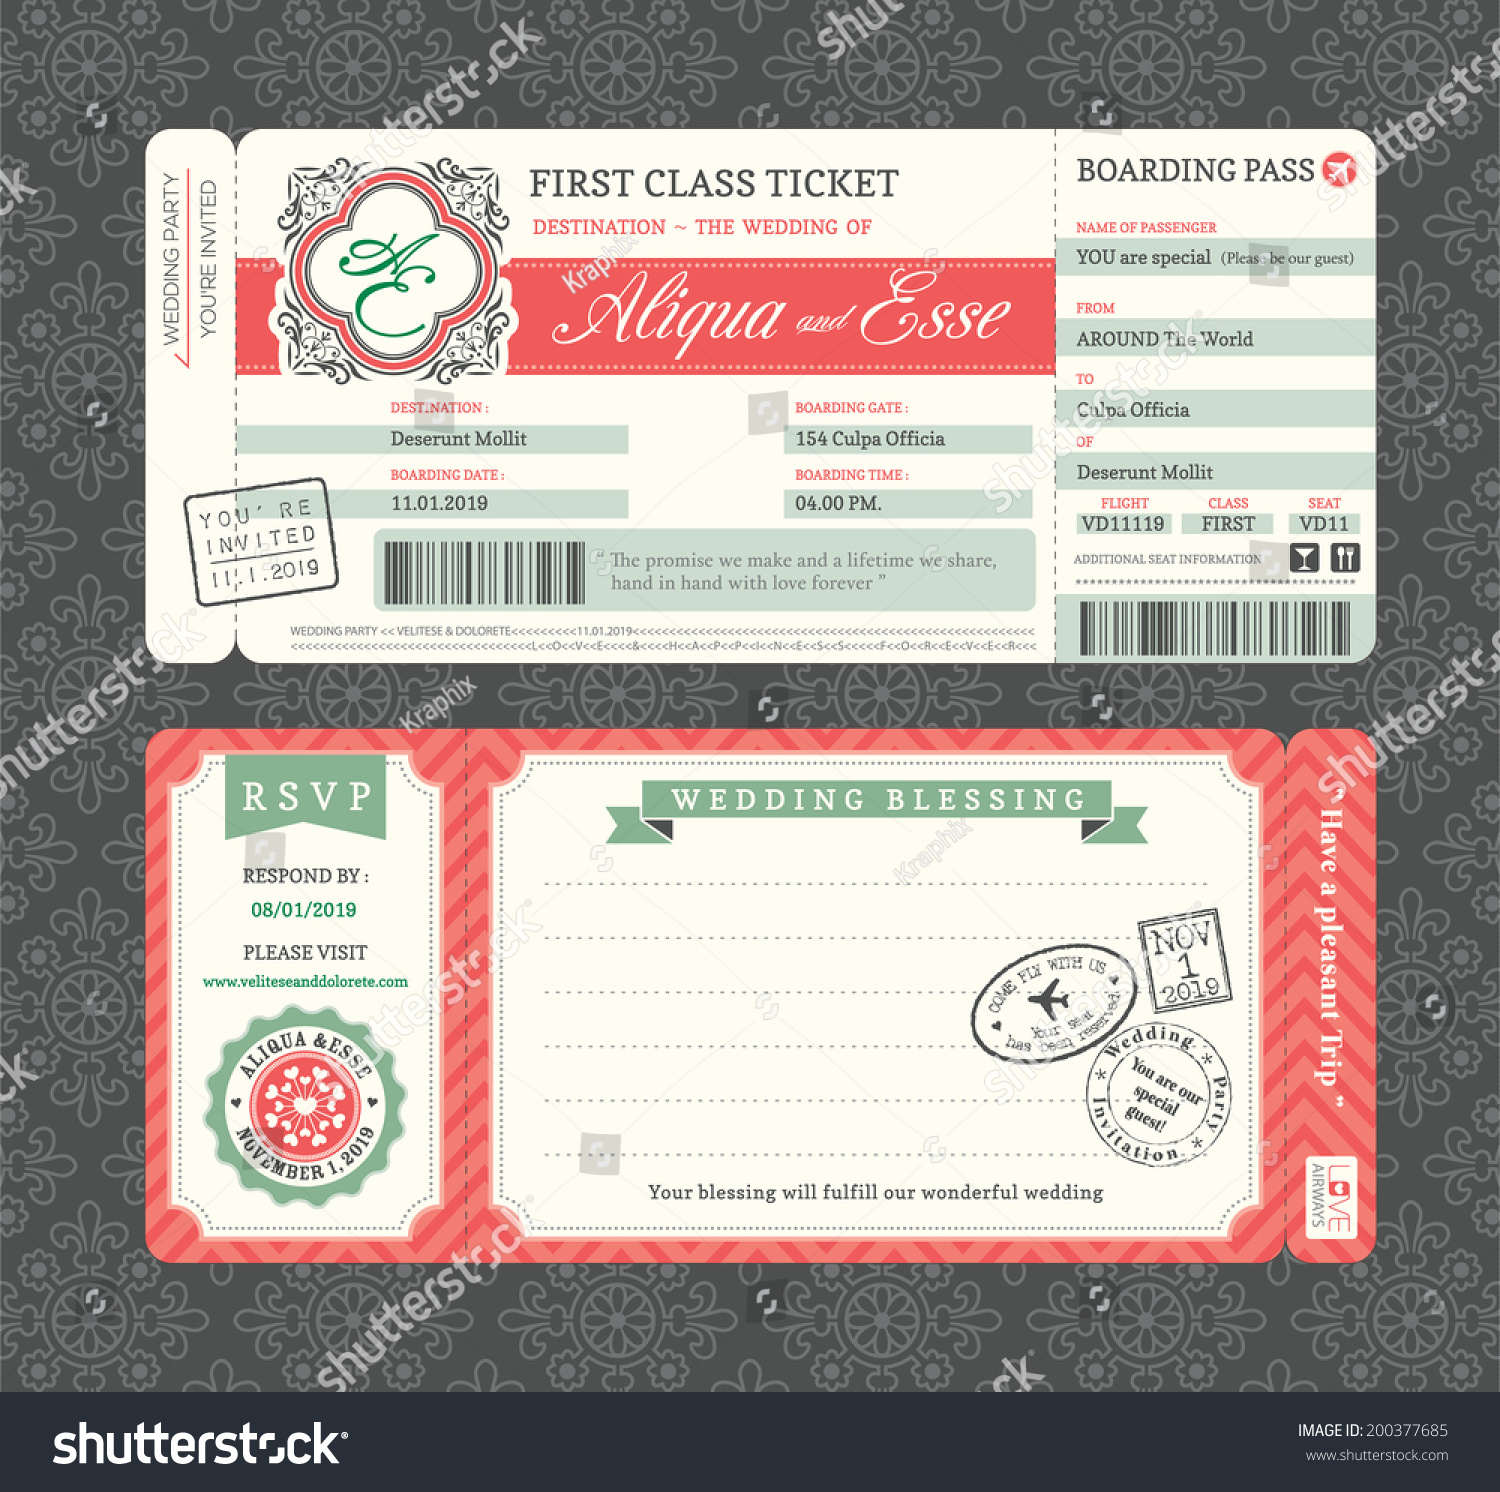 vintage boarding pass ticket wedding invitation stock vector 200377685 shutterstock. Black Bedroom Furniture Sets. Home Design Ideas